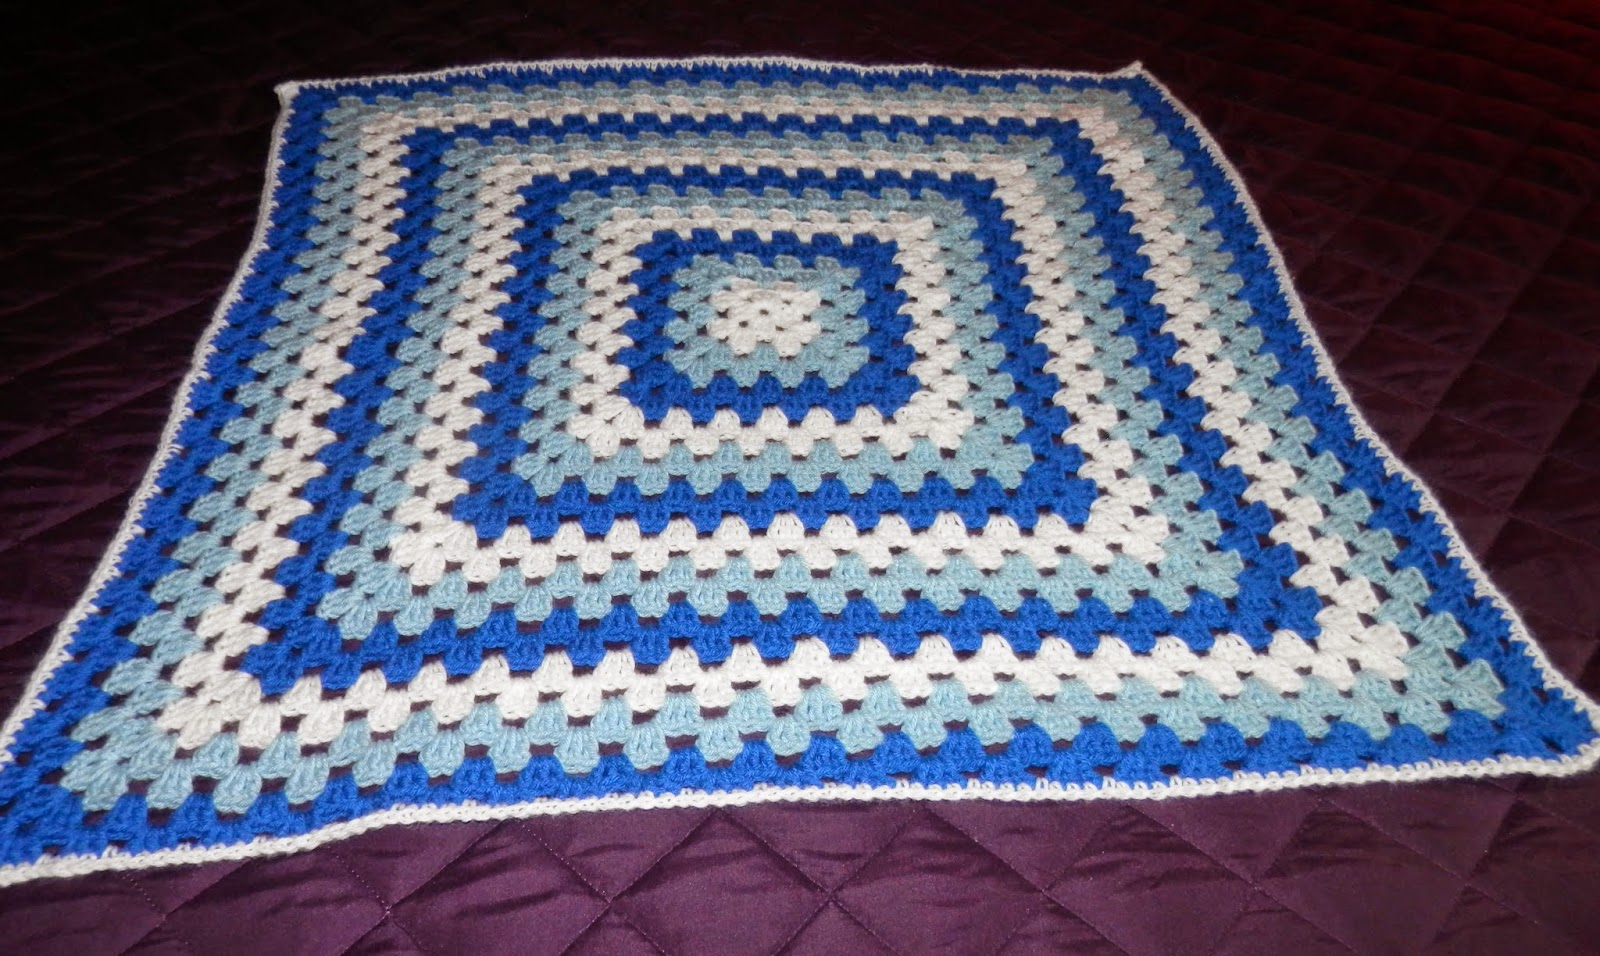 Karens Crocheted Garden of Colors: Blue and White Granny Square Baby ...